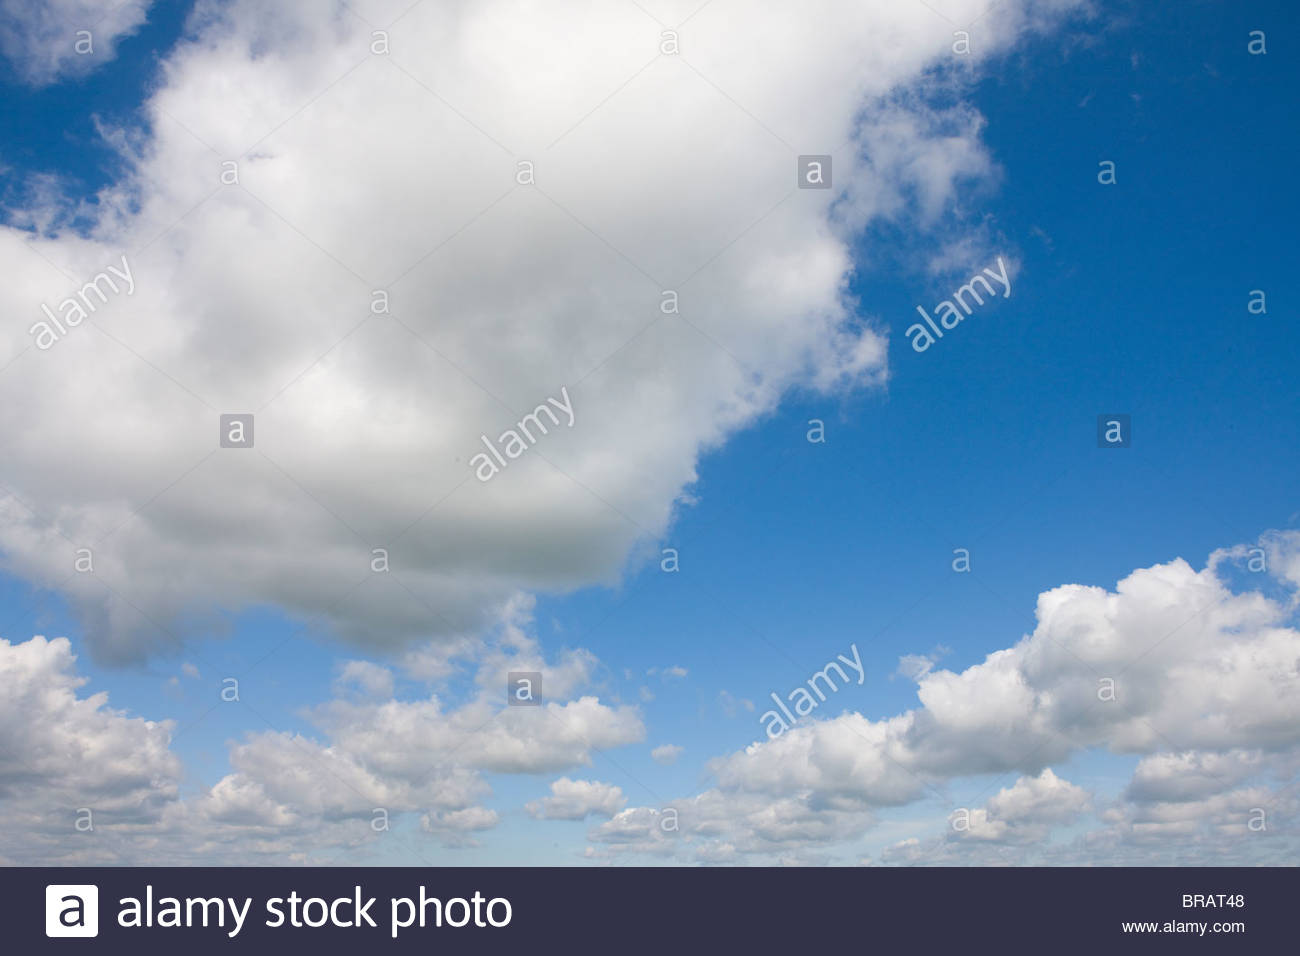 Clouds in blue sky - Stock Image